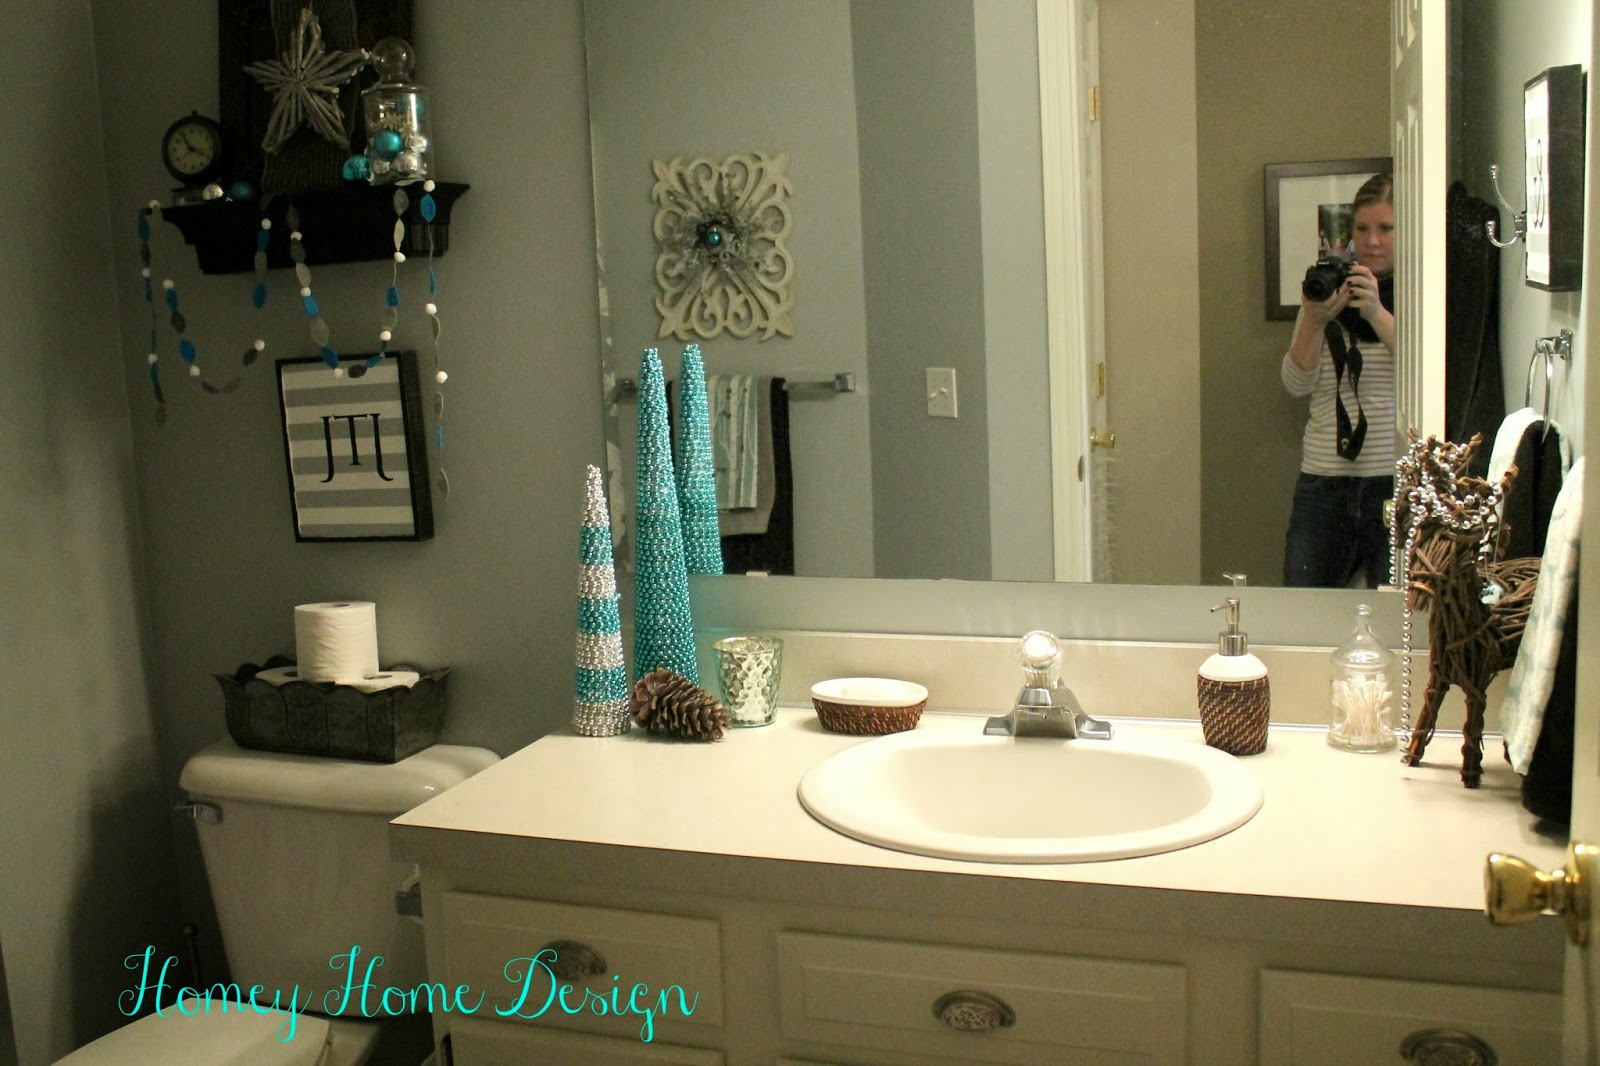 Homey home design bathroom christmas ideas for Art for bathroom ideas